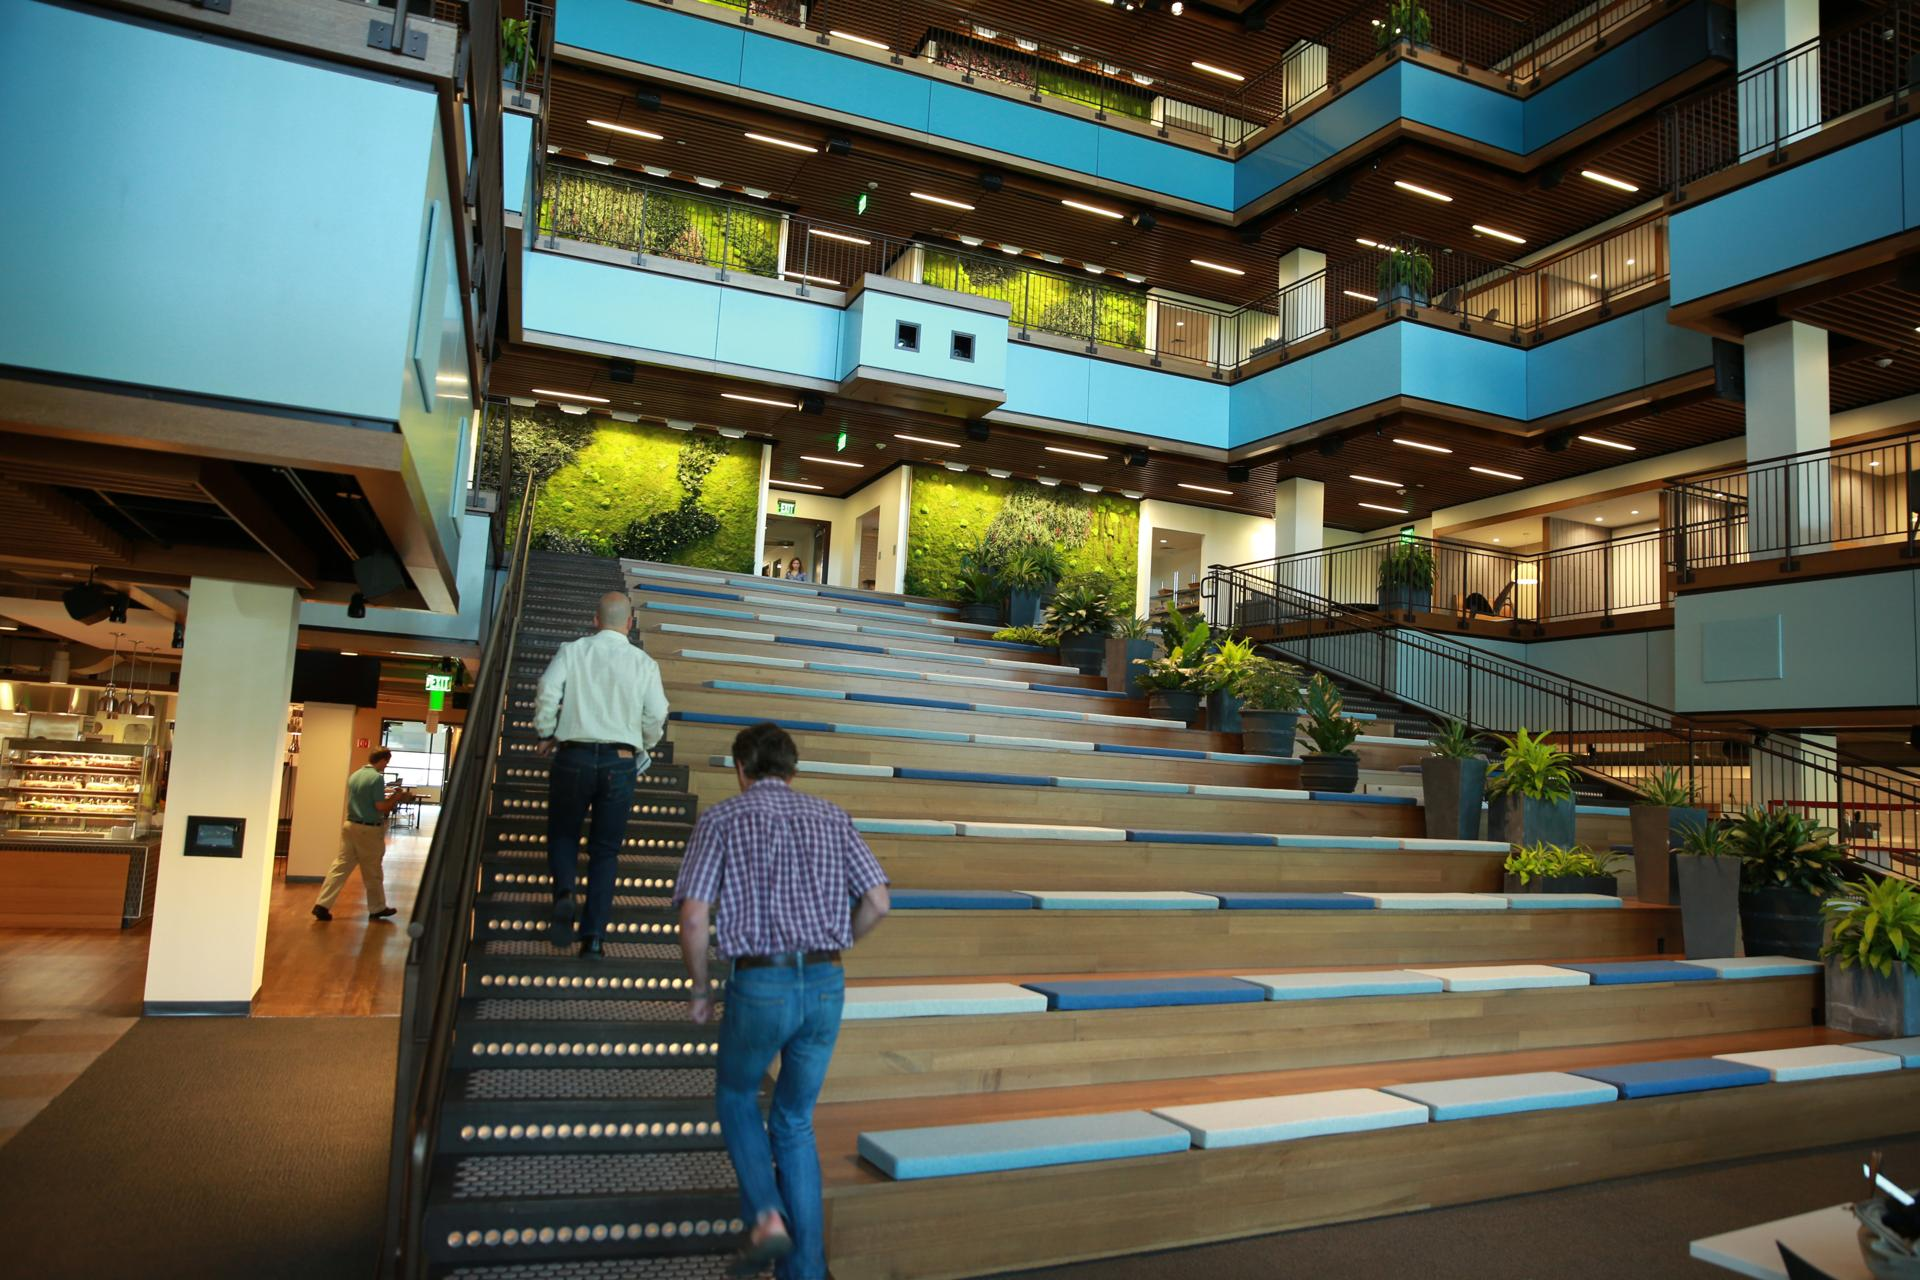 In Needham, TripAdvisor's staircase serves as an event space, too.